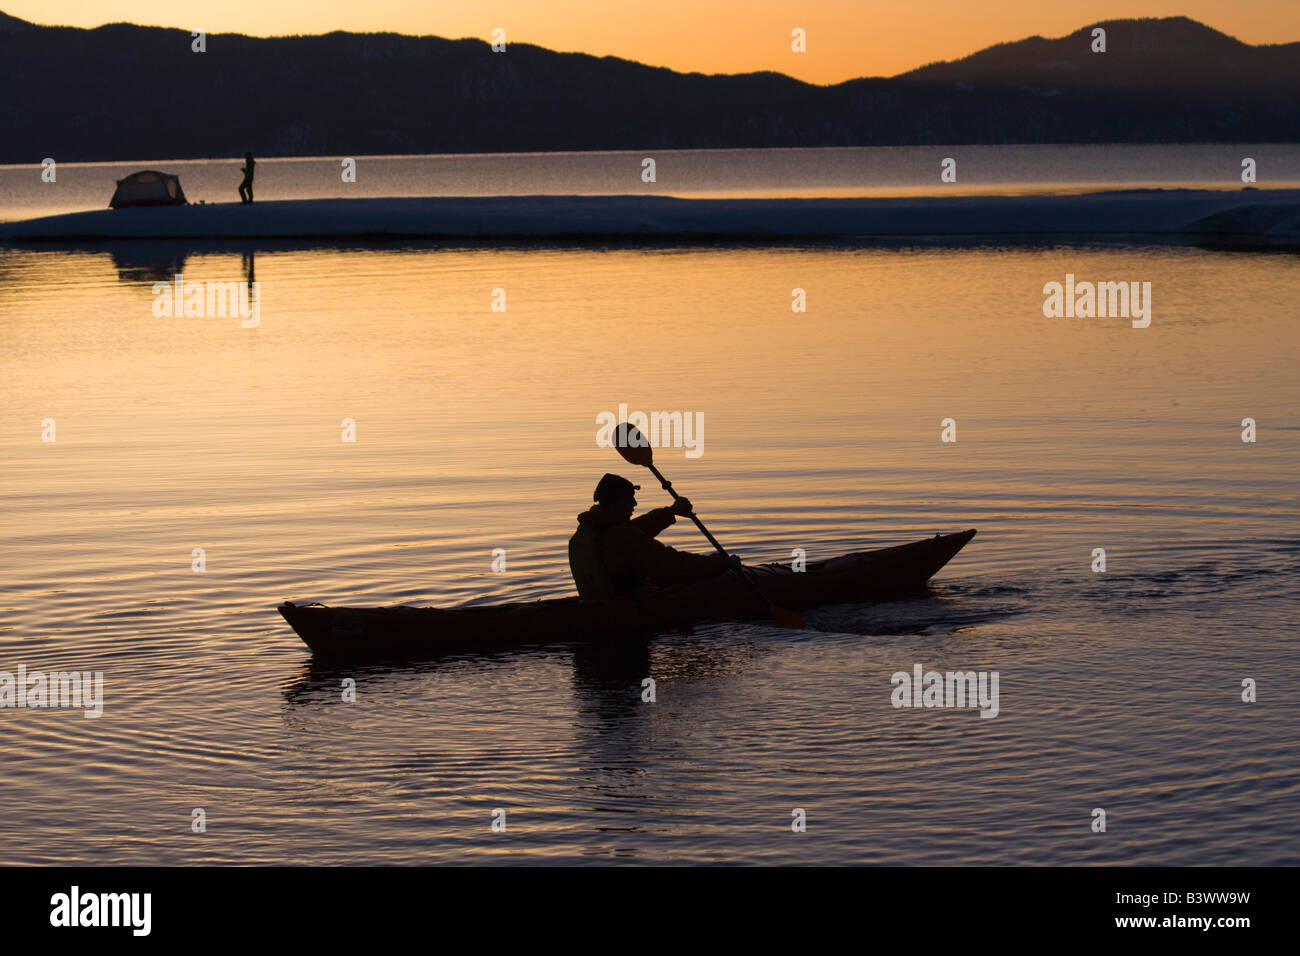 Silhouette of a man kayaking in a lake with a woman near a tent in the background Lake Tahoe California USA & Silhouette of a man kayaking in a lake with a woman near a tent in ...